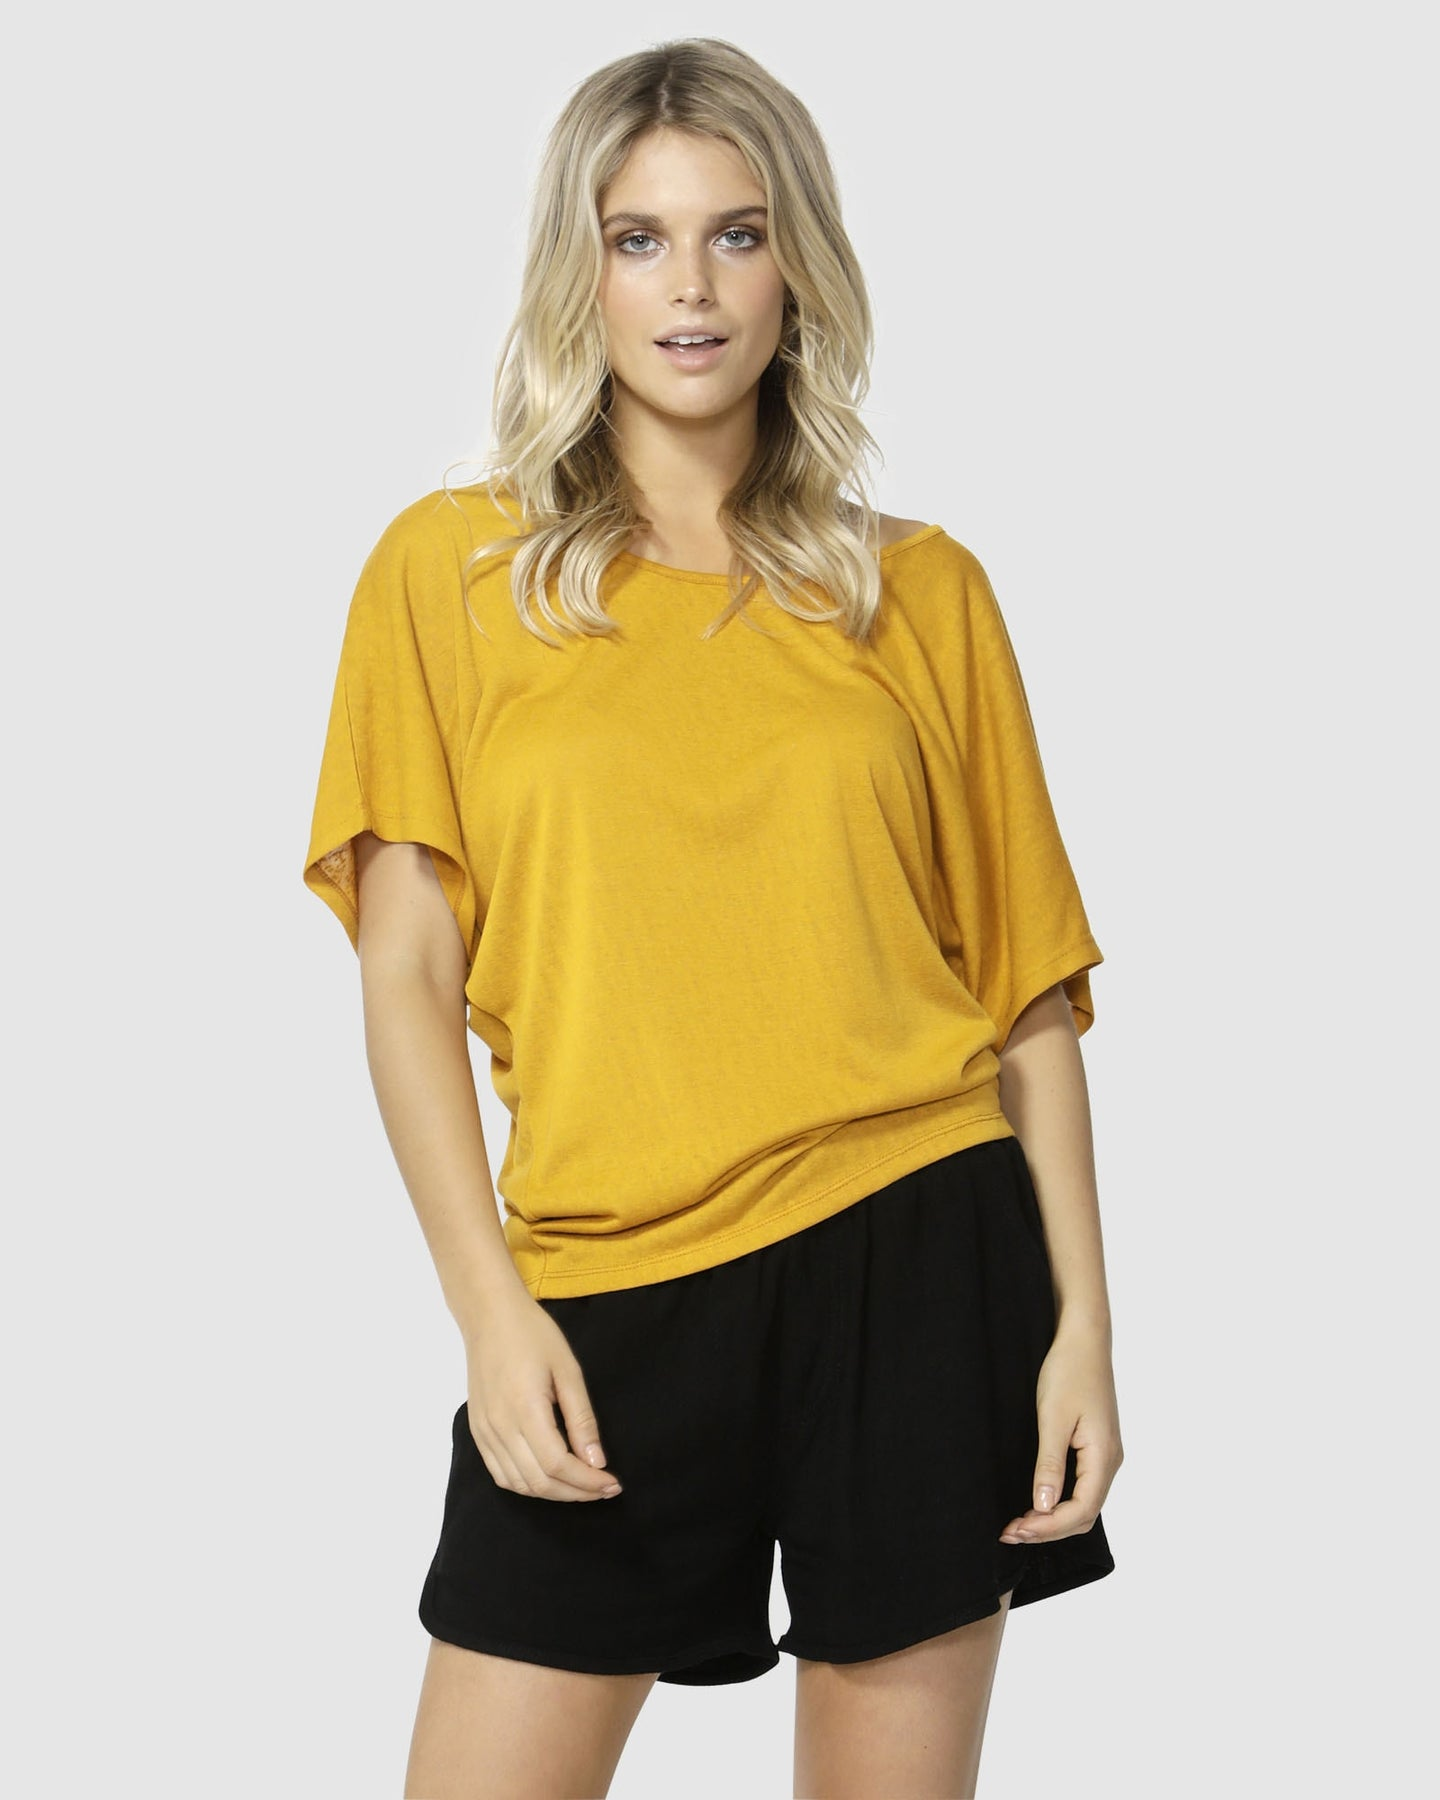 Betty Basics Maui Tee